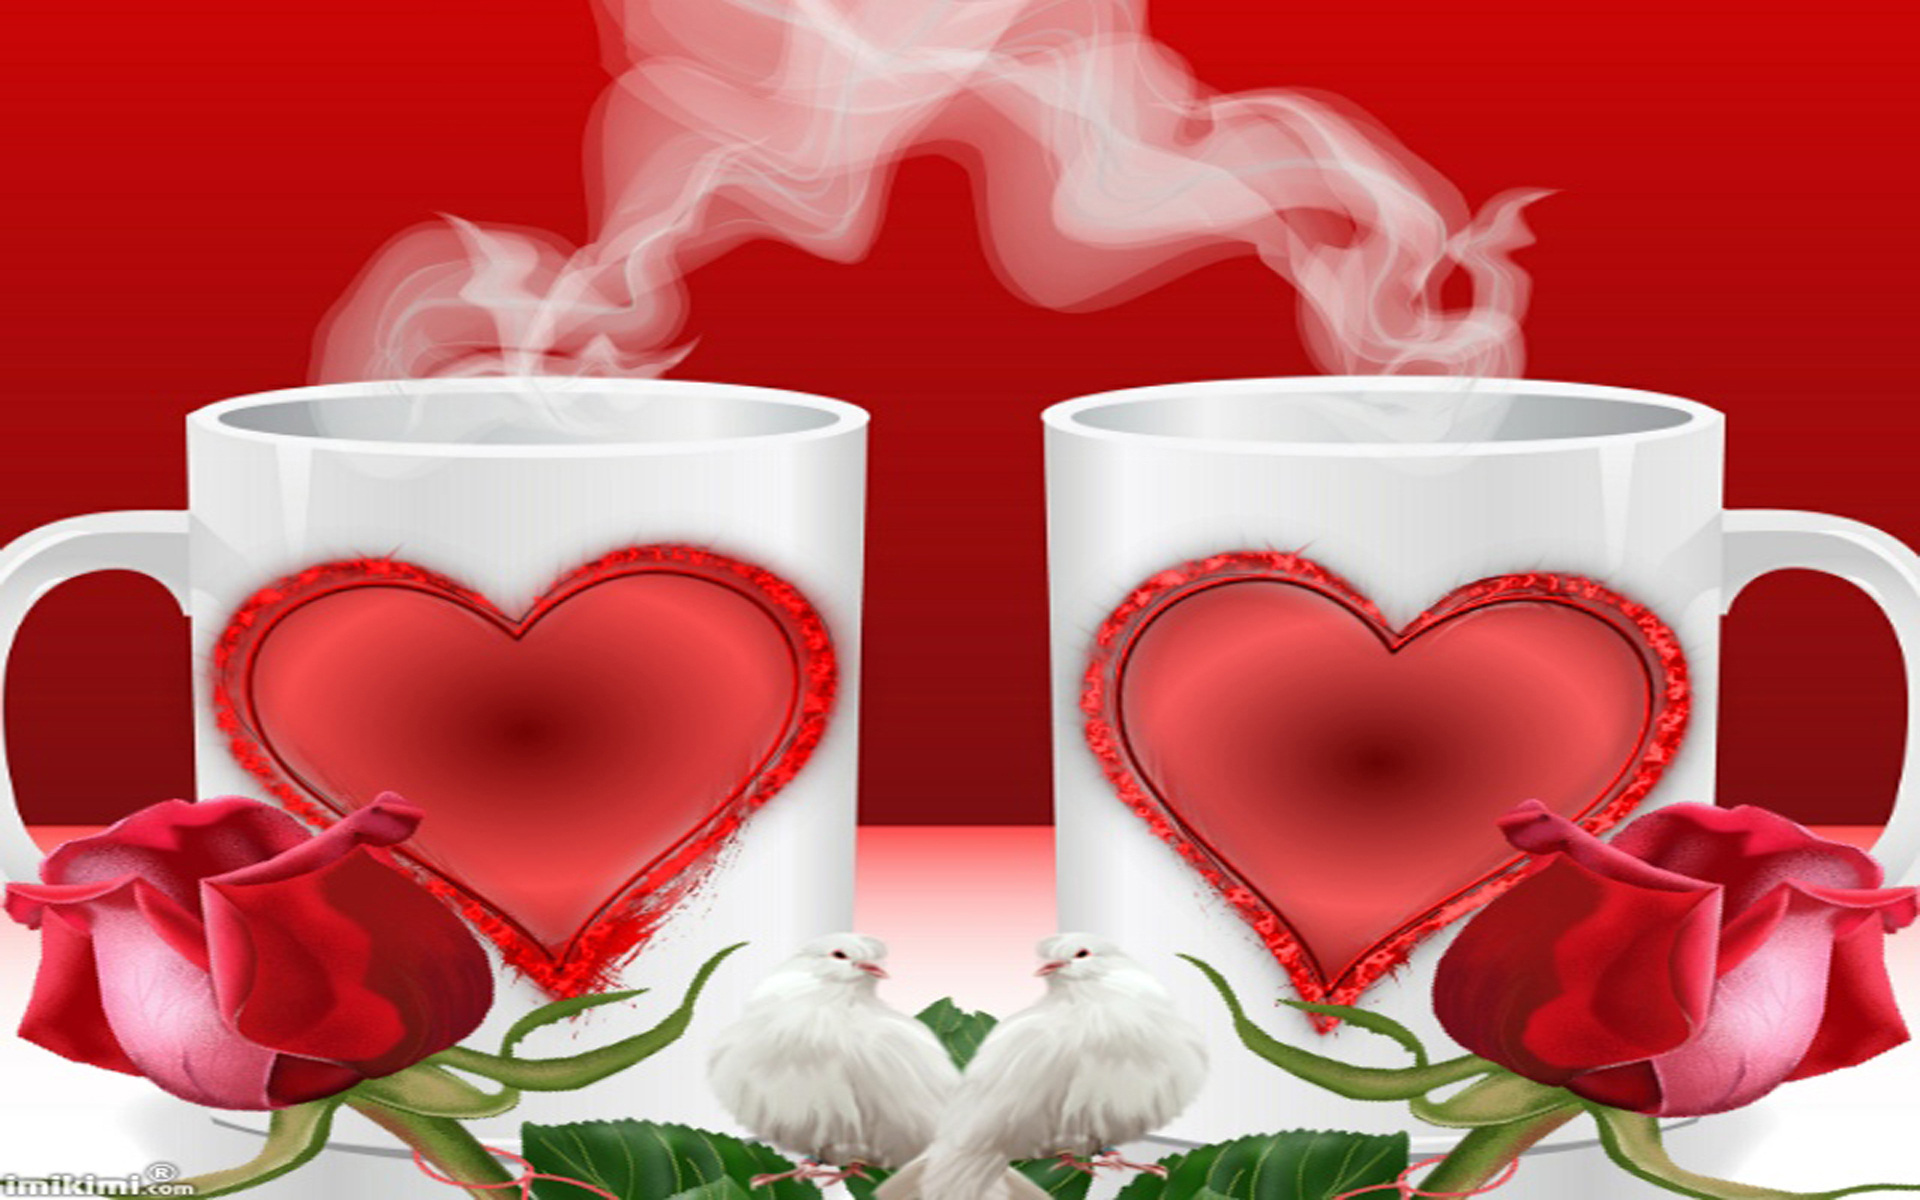 Cute Couple Kissing Wallpaper Download Love Cup Of Coffee Or Two Red Hearts Red Roses